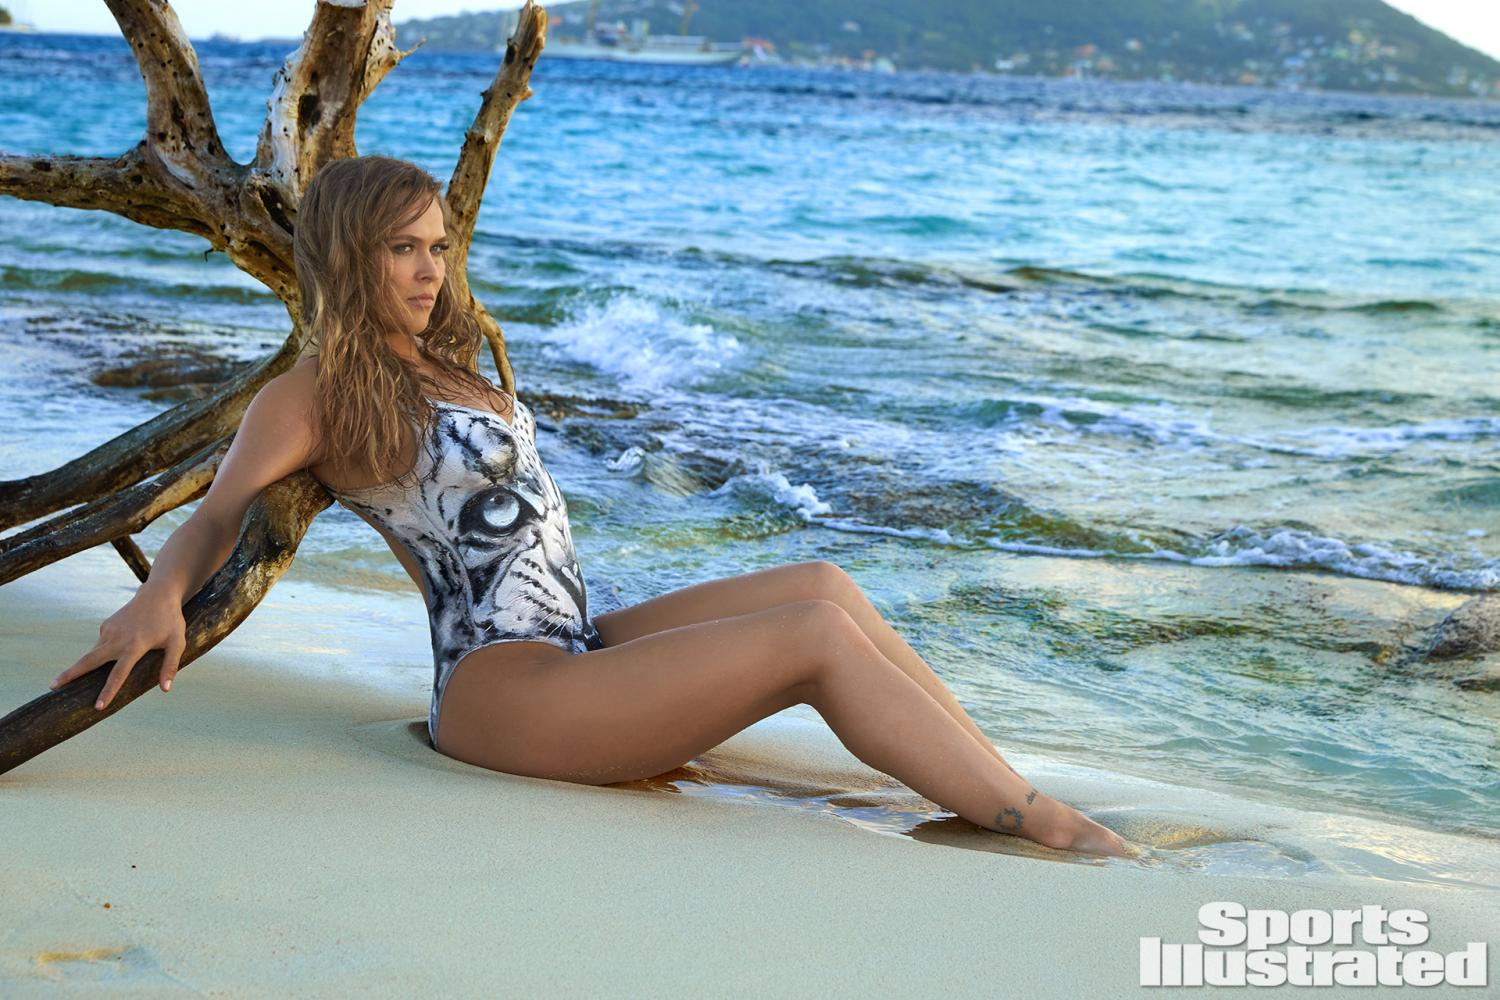 ronda-rousey-foi-capa-da-revista-sports-illustrated-so-de-bodypaint4